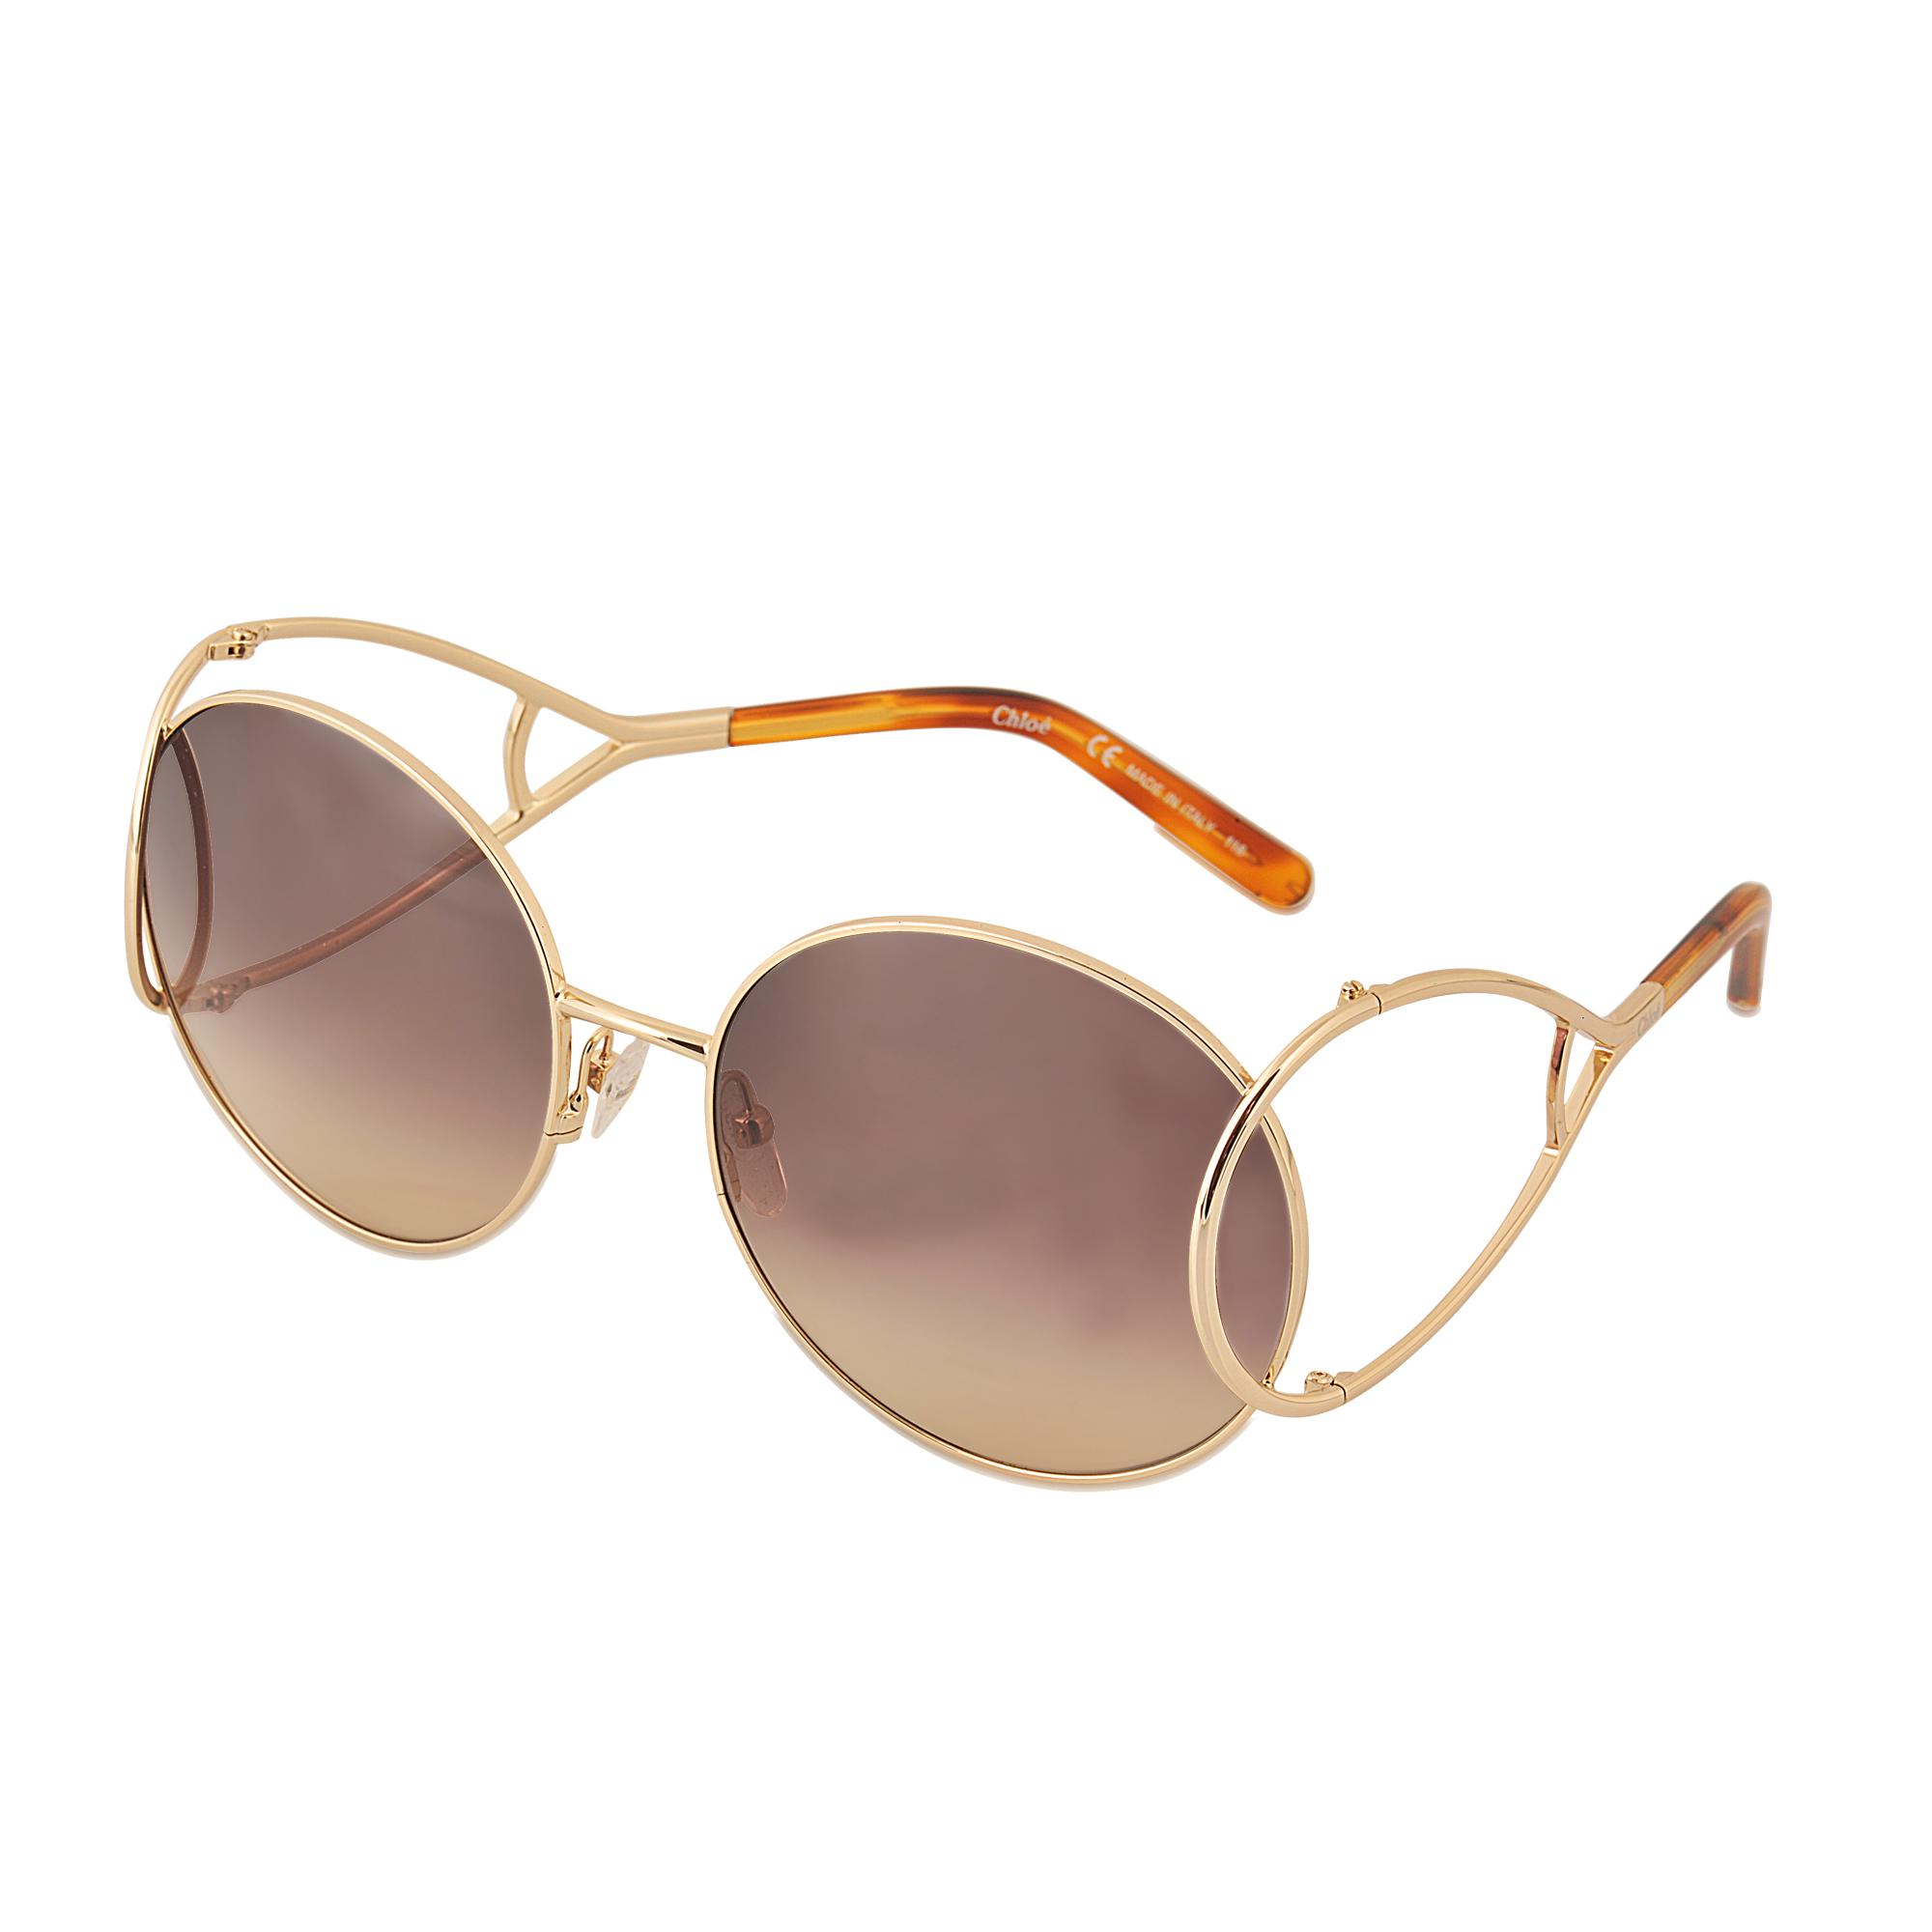 219ad765613 Chloé Ce124s Jackson Sunglasses in Brown - Lyst